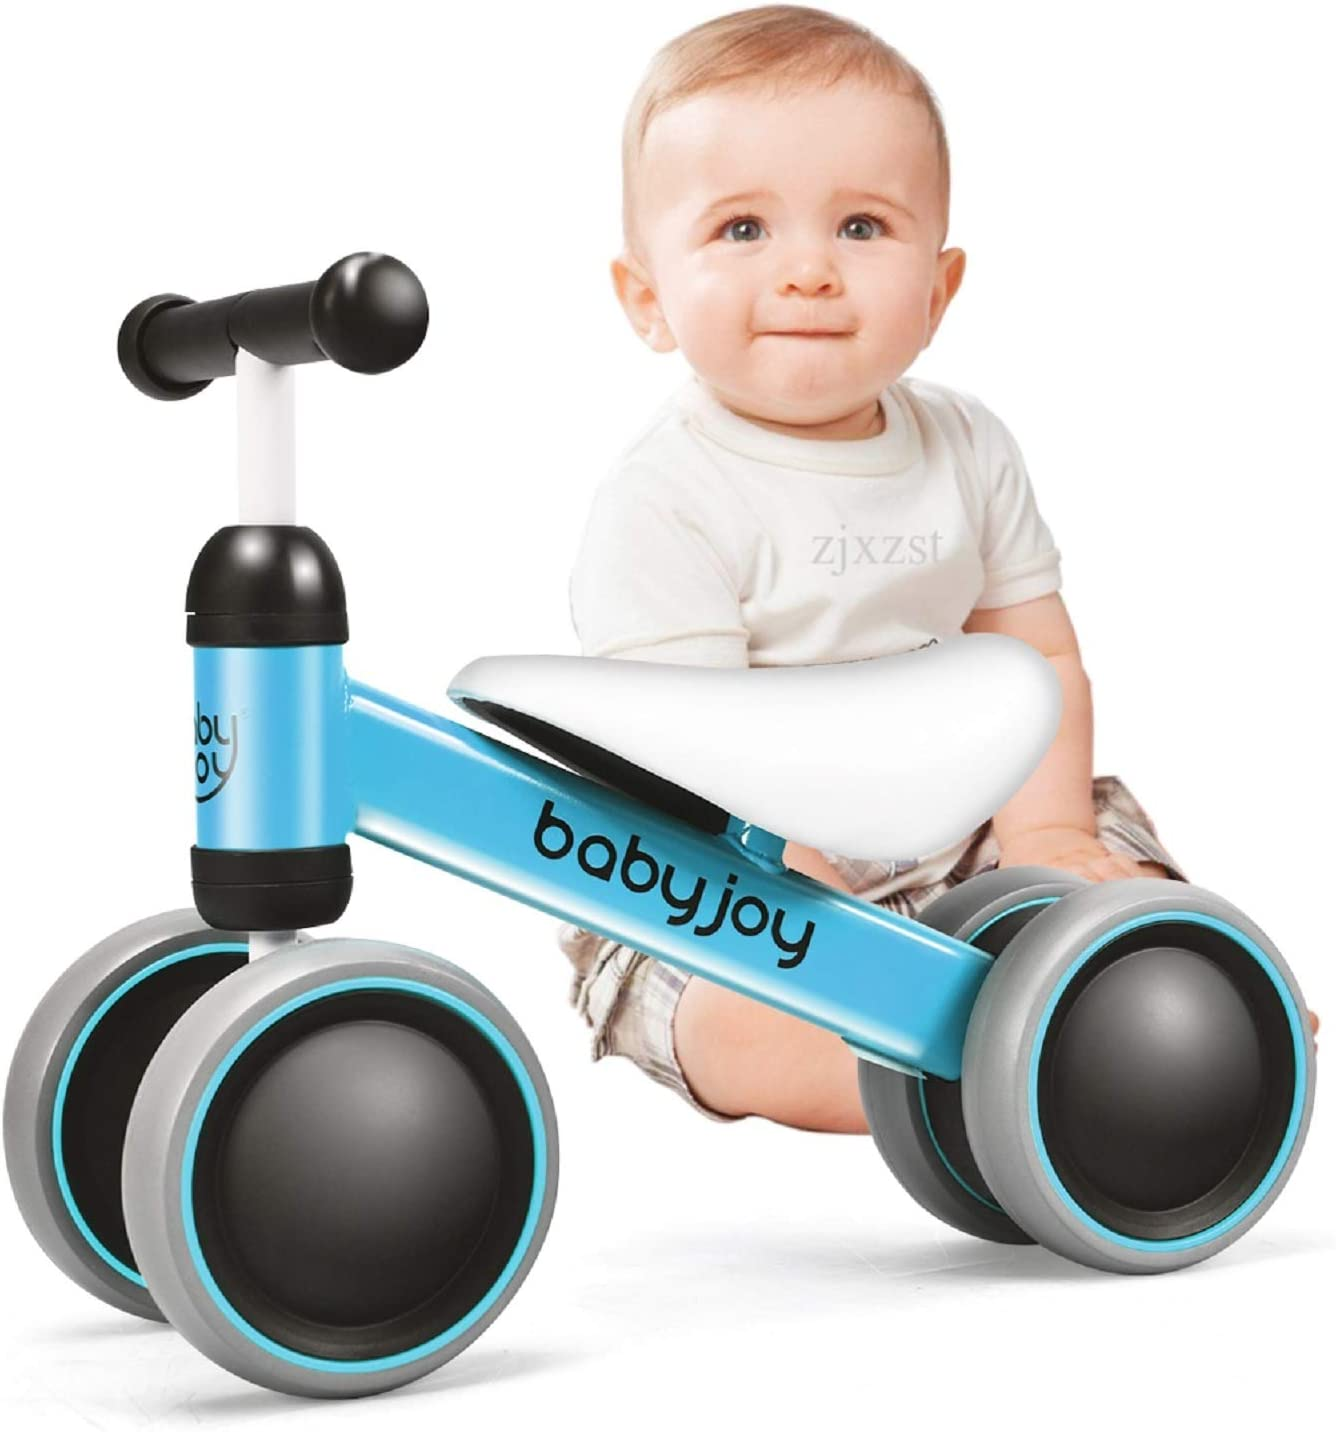 BABY JOY Baby Balance Bikes, Baby Bicycle, Children Walker Toddler Baby Ride Toys for 9-24 Months, Ride-on Toys Gifts Indoor Outdoor for 1 Year Old, No Pedal Infant 4 Wheels Bike (Blue): Toys & Games